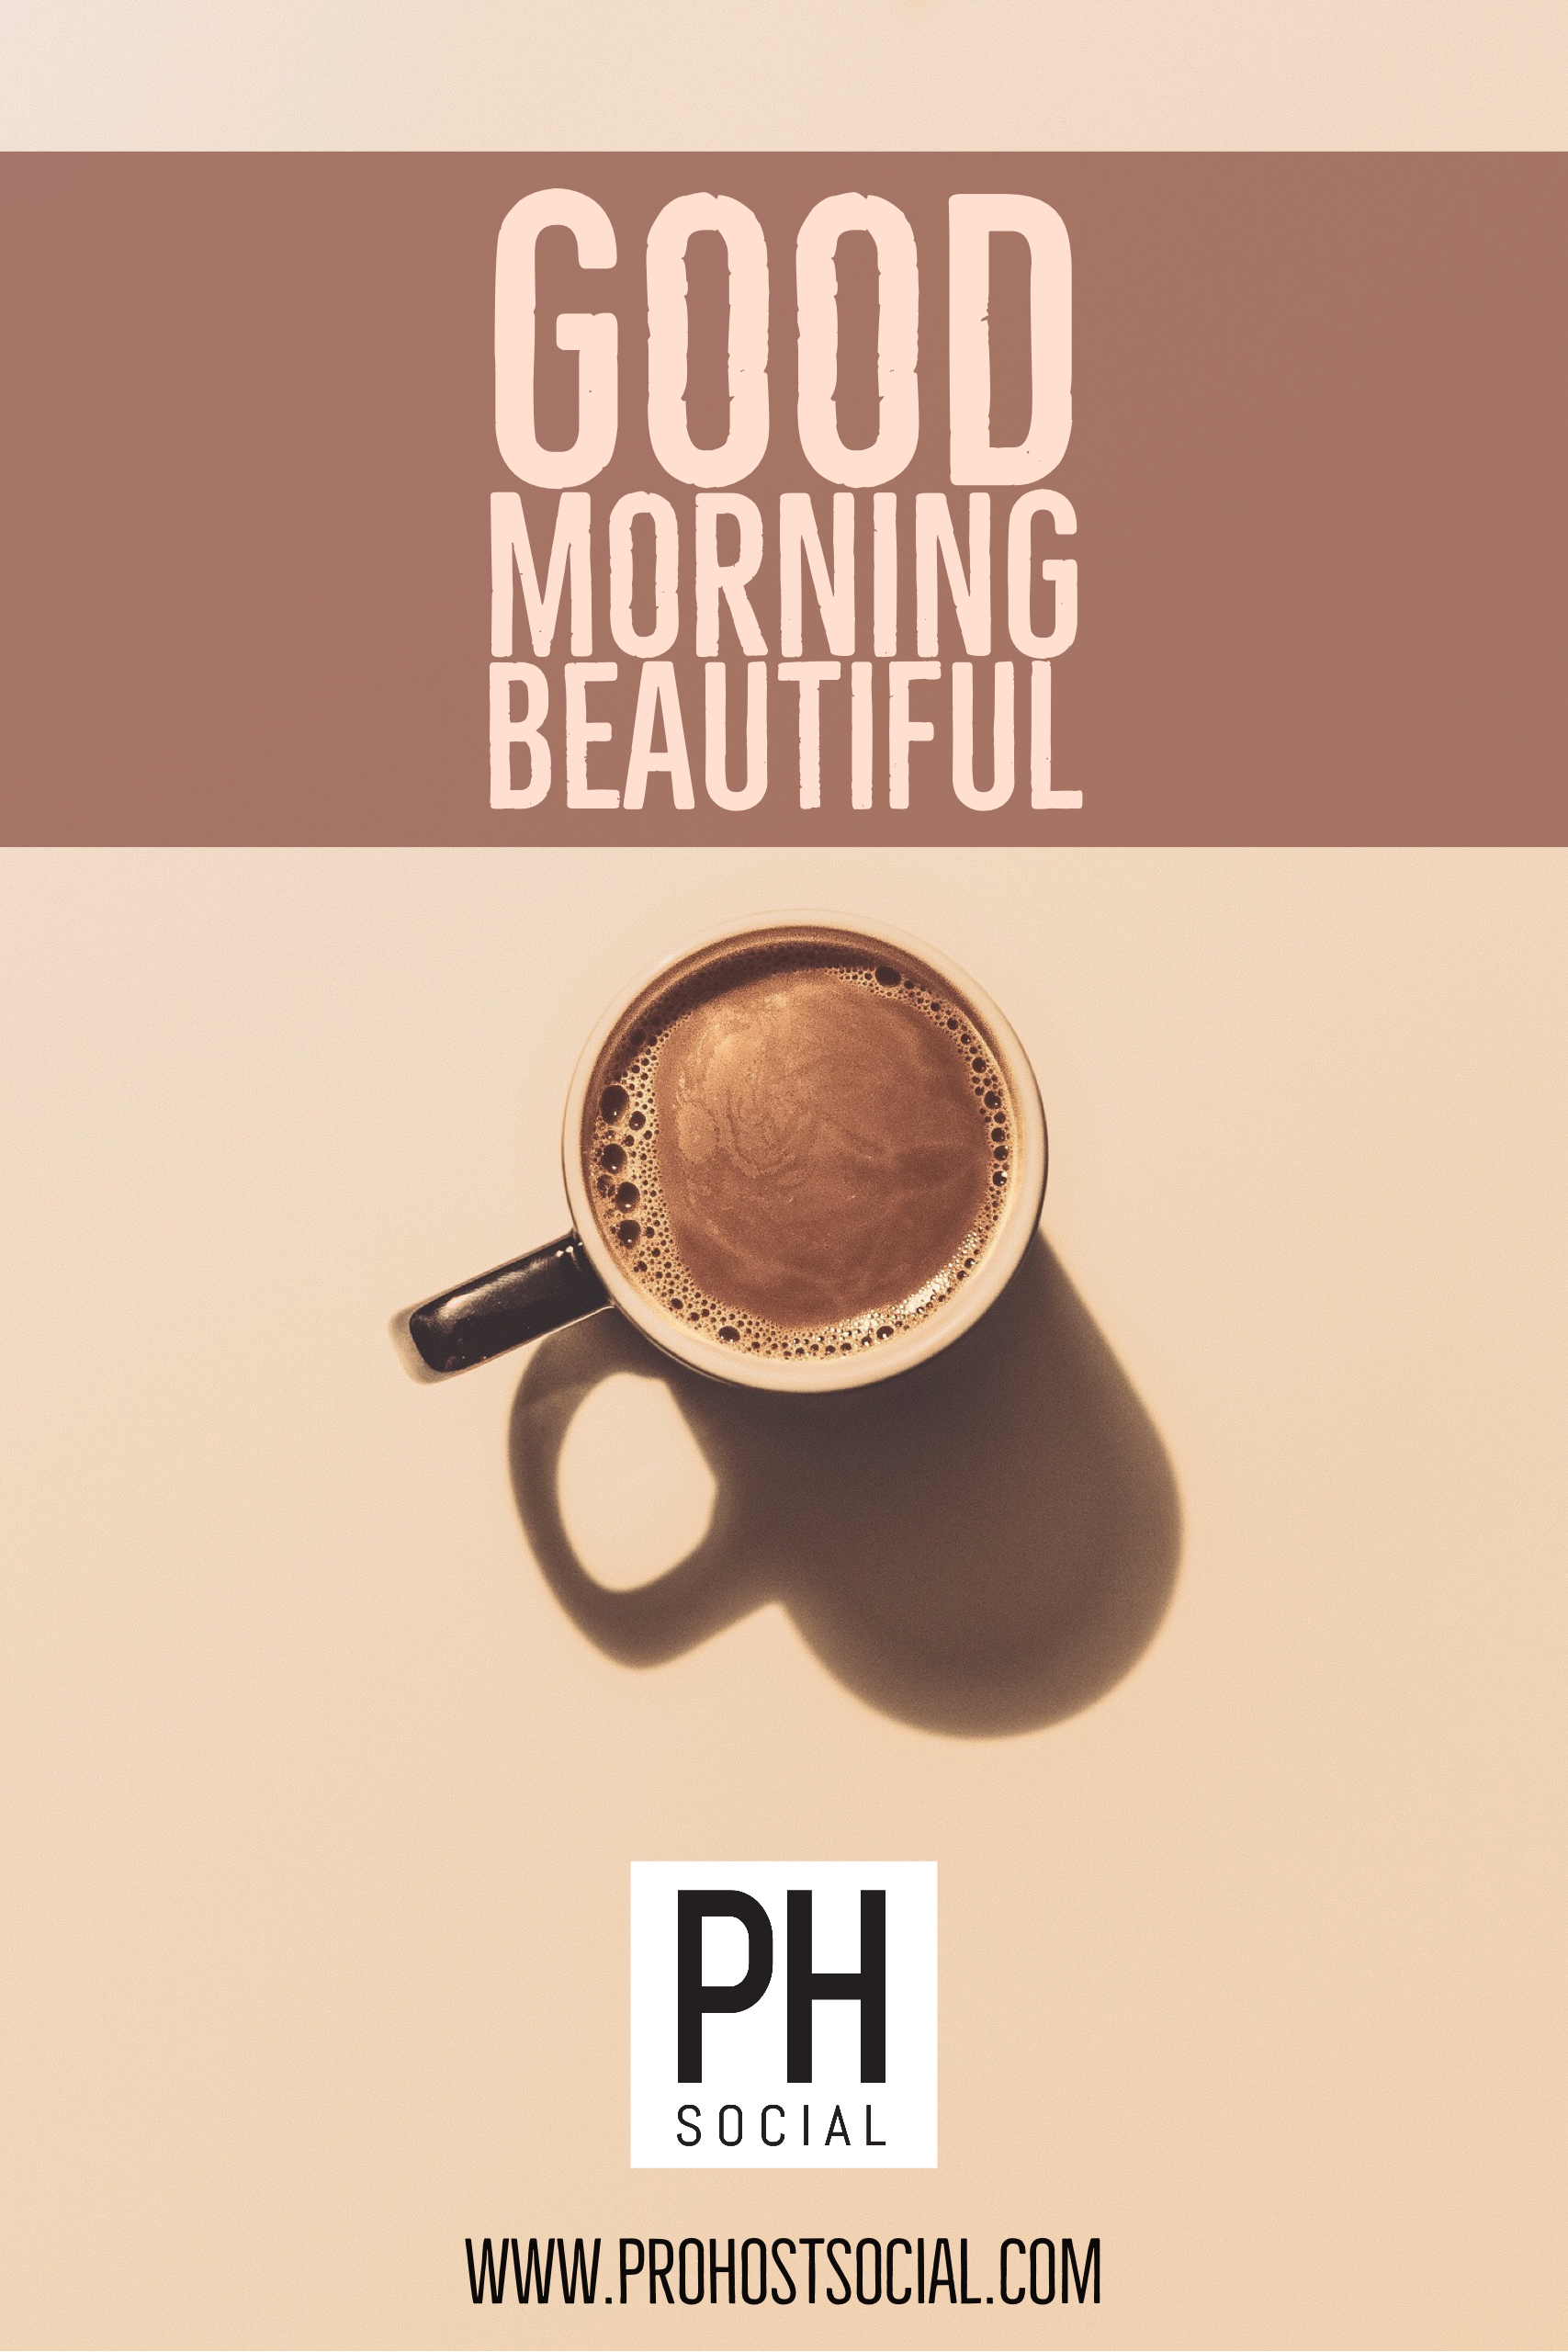 Wake up early. Drink coffee. Work hard. Be ambitious. Keep